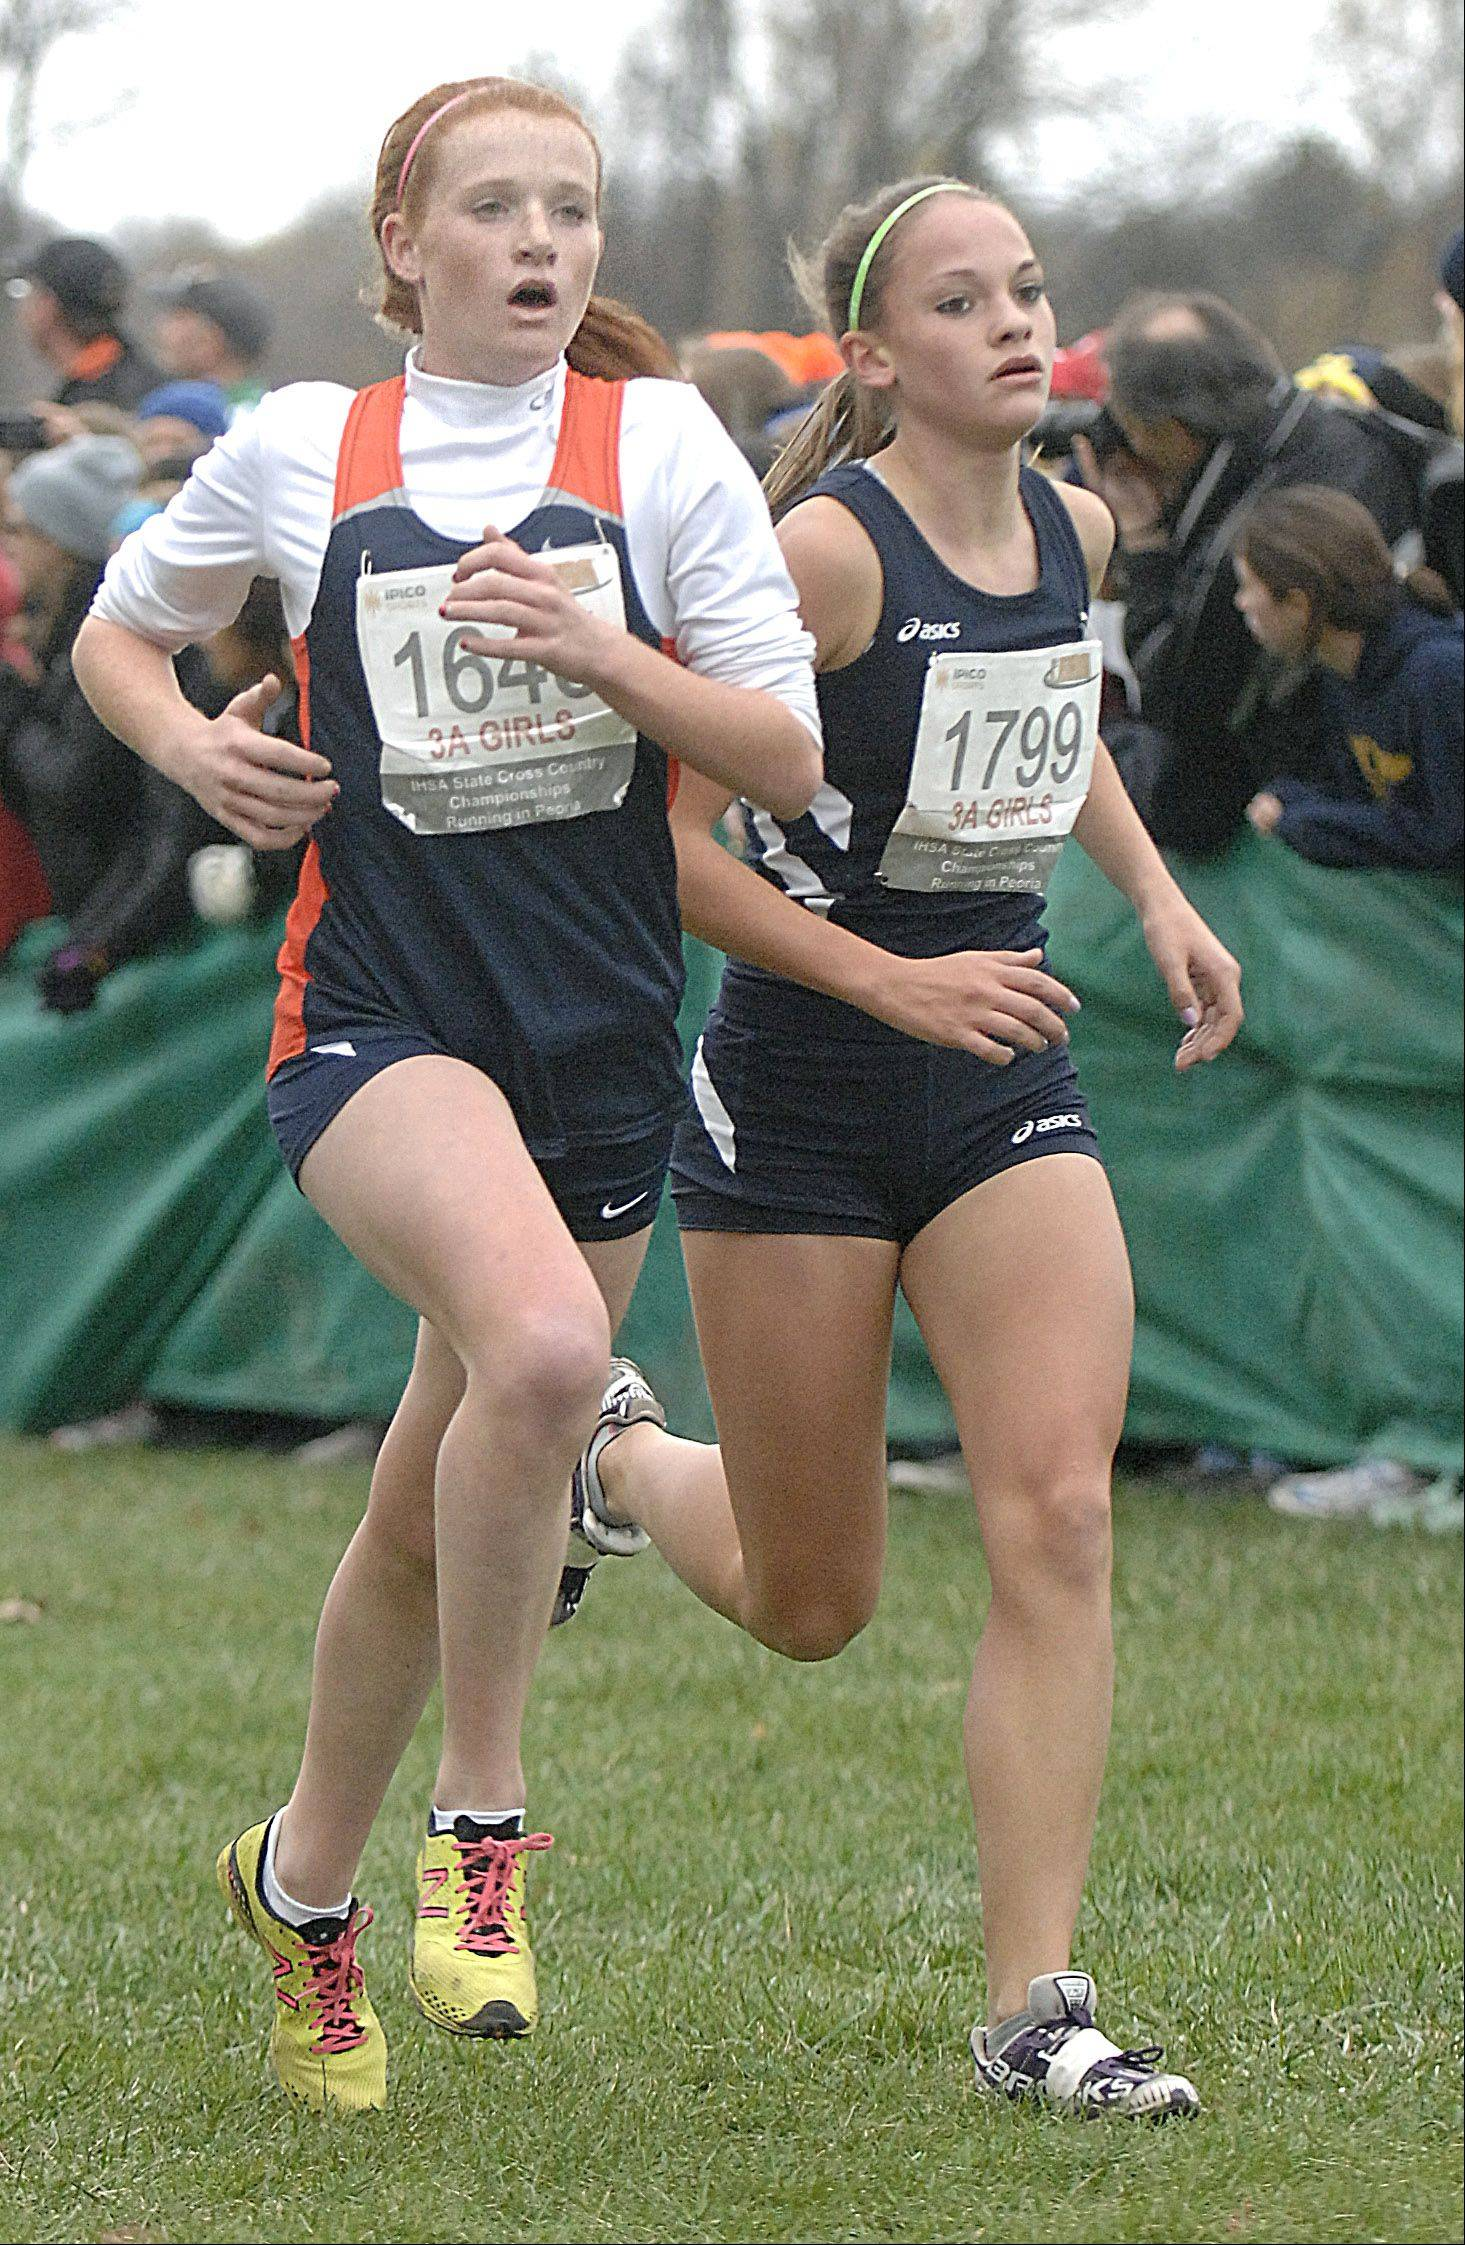 Naperville North's Judy Pendergast and Cary-Grove's Talia Duzey approach the finish line in the state cross country 3A final to take 23rd and 25th place respectively in Peoria on Saturday, November 3.